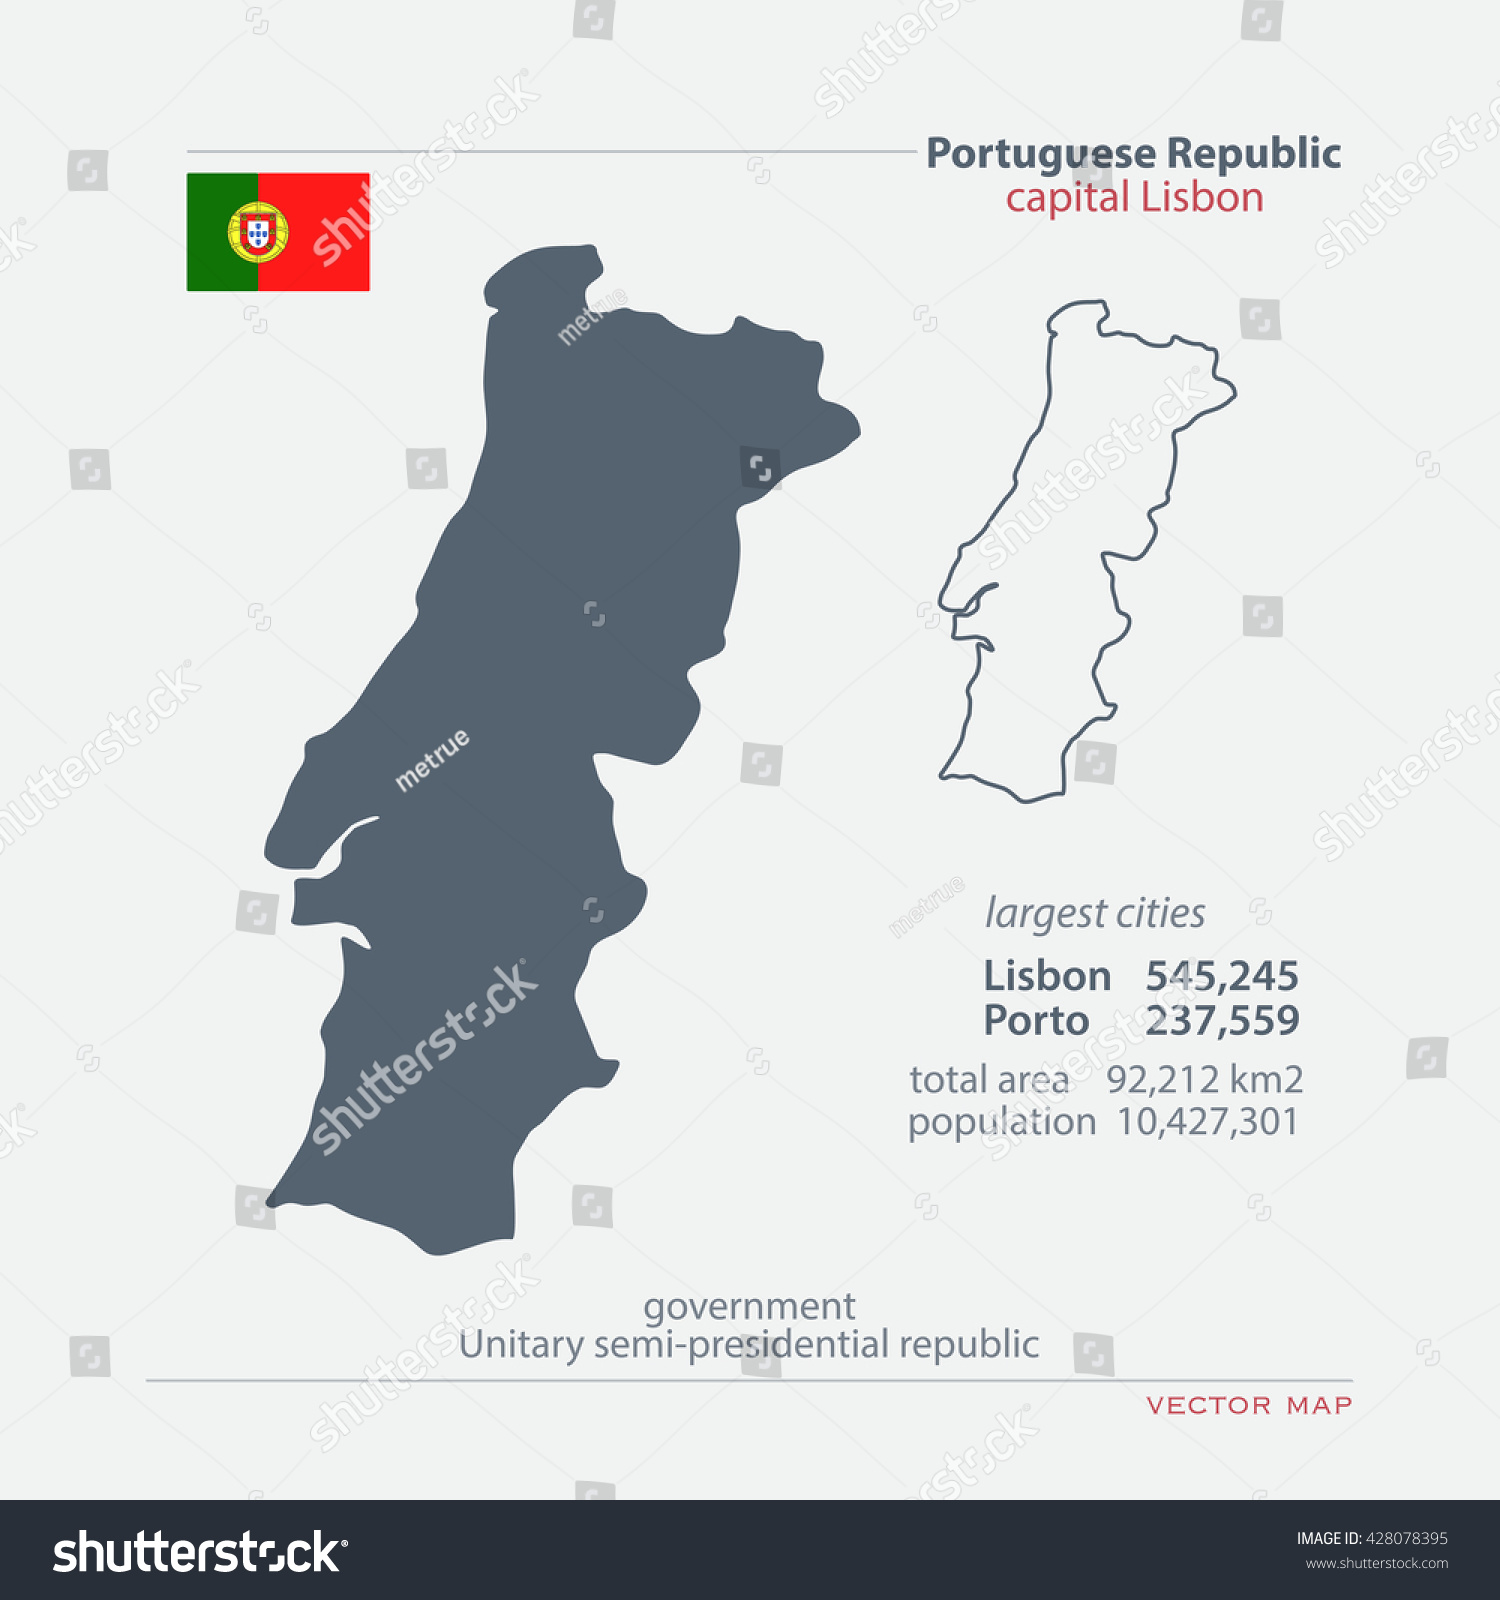 Portuguese Republic Isolated Maps Official Flag Stock Vector - Portugal map icon